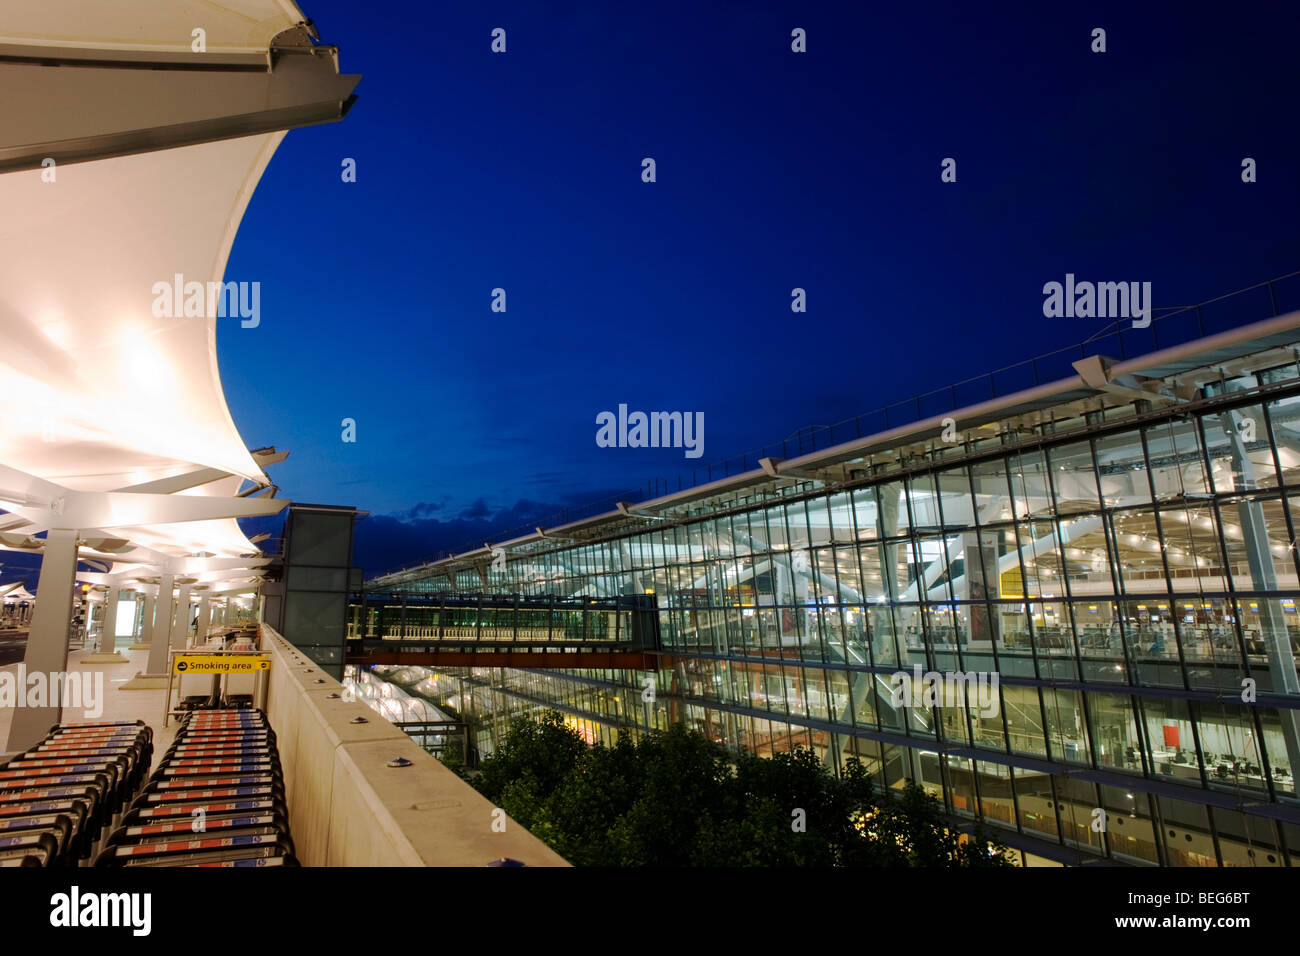 Early evening exterior of glass walls and glowing architecture of Heathrow Airport's Terminal 5, seen from departures - Stock Image